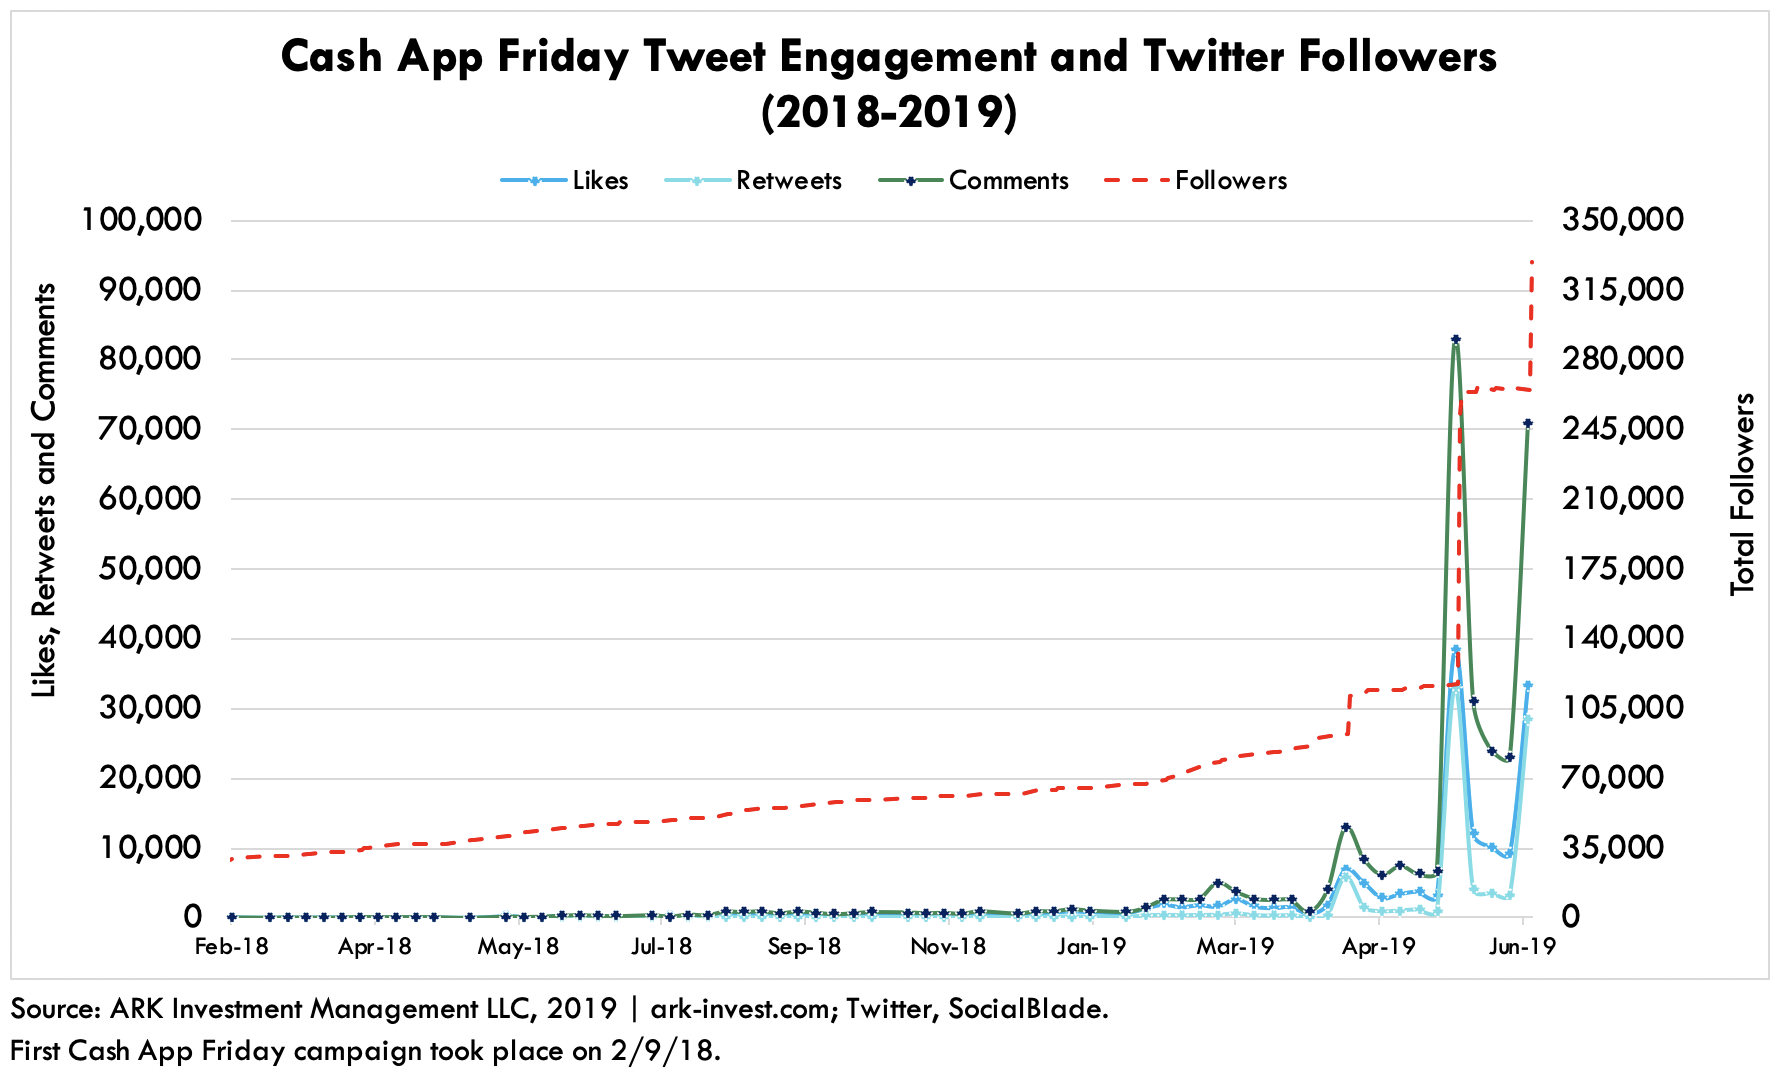 Cash App Twitter Engagement and Followers